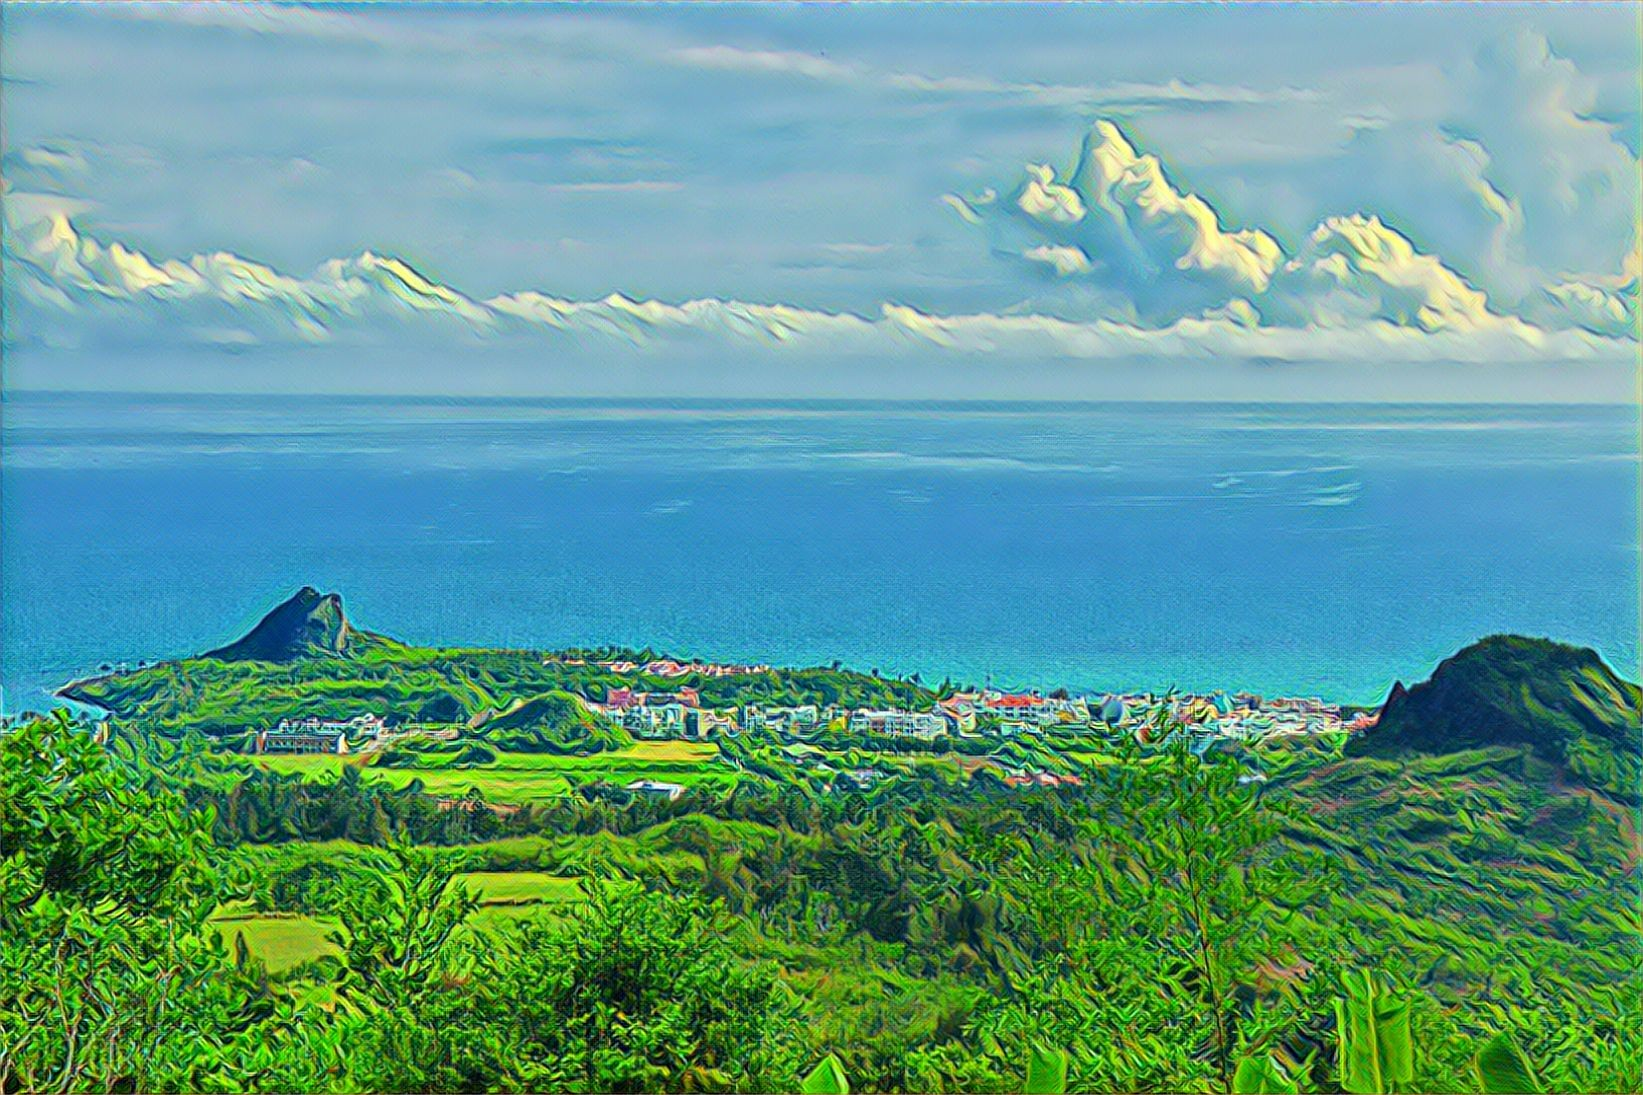 Kenting National Park, Taiwan's Blue and Green Paradise